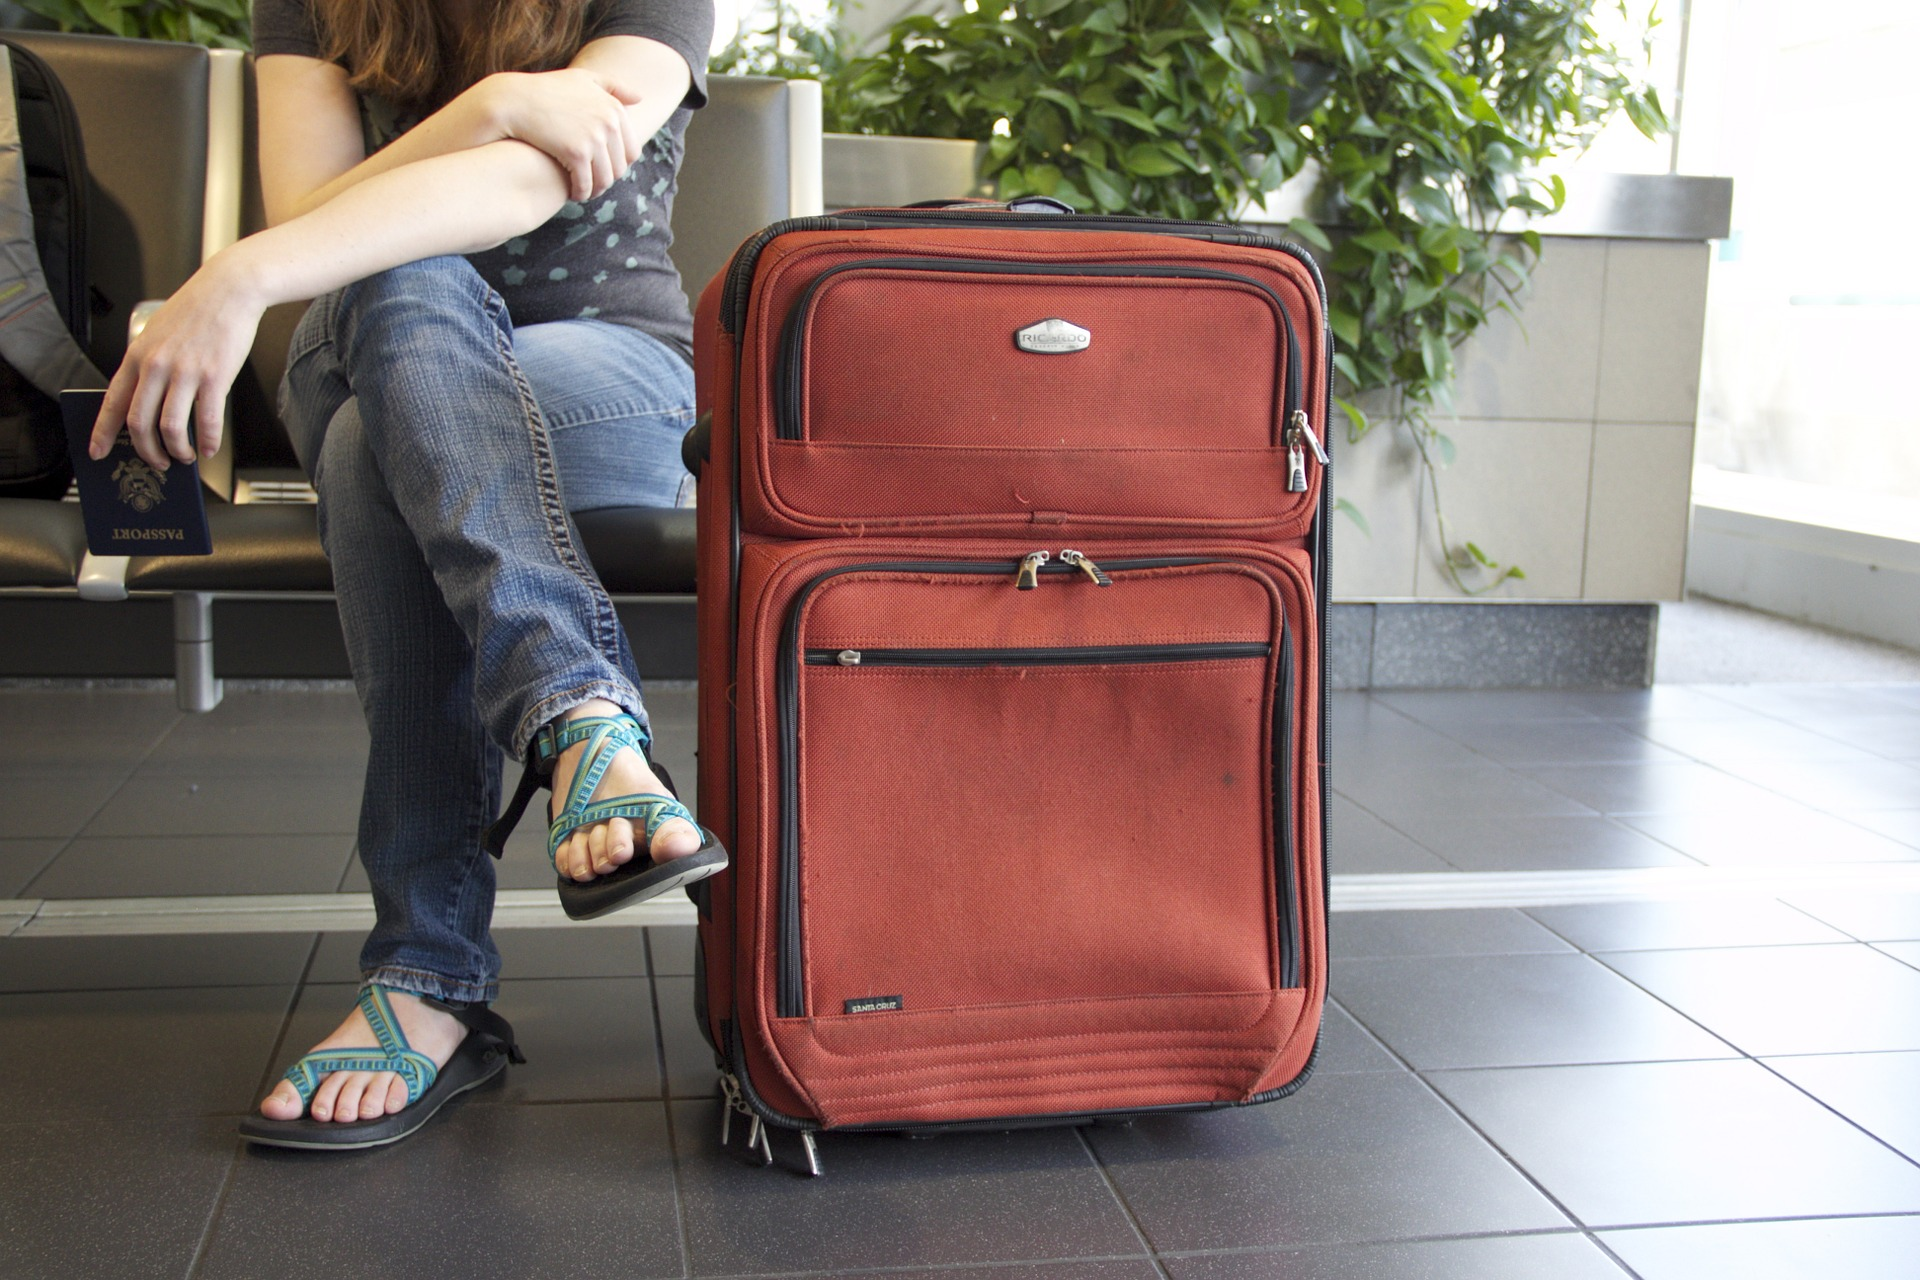 Traveler sits next to luggage while holding passport